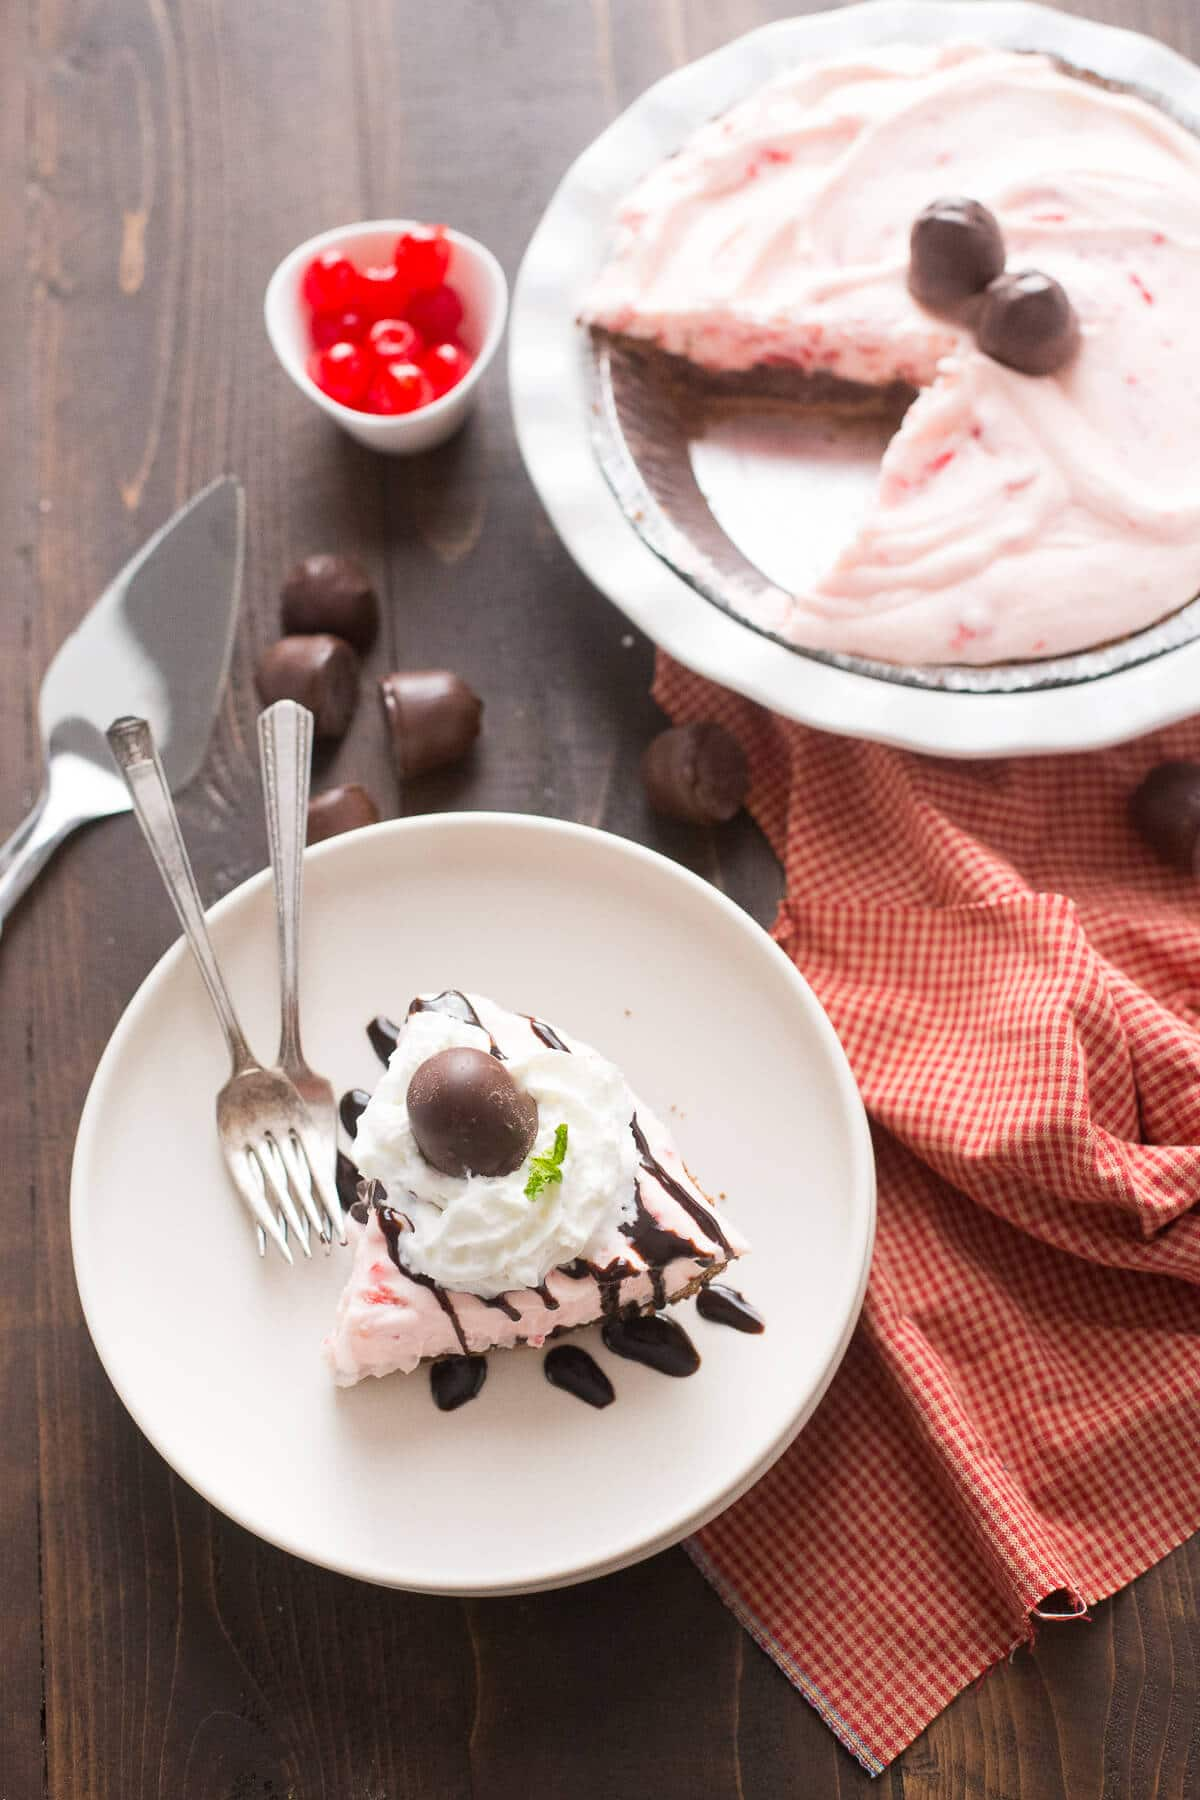 Cherry cream pie is a stunning dessert! This has a such a fluffly cherry filling that rests atop a decadant chocolate layer. It is sinfully good!